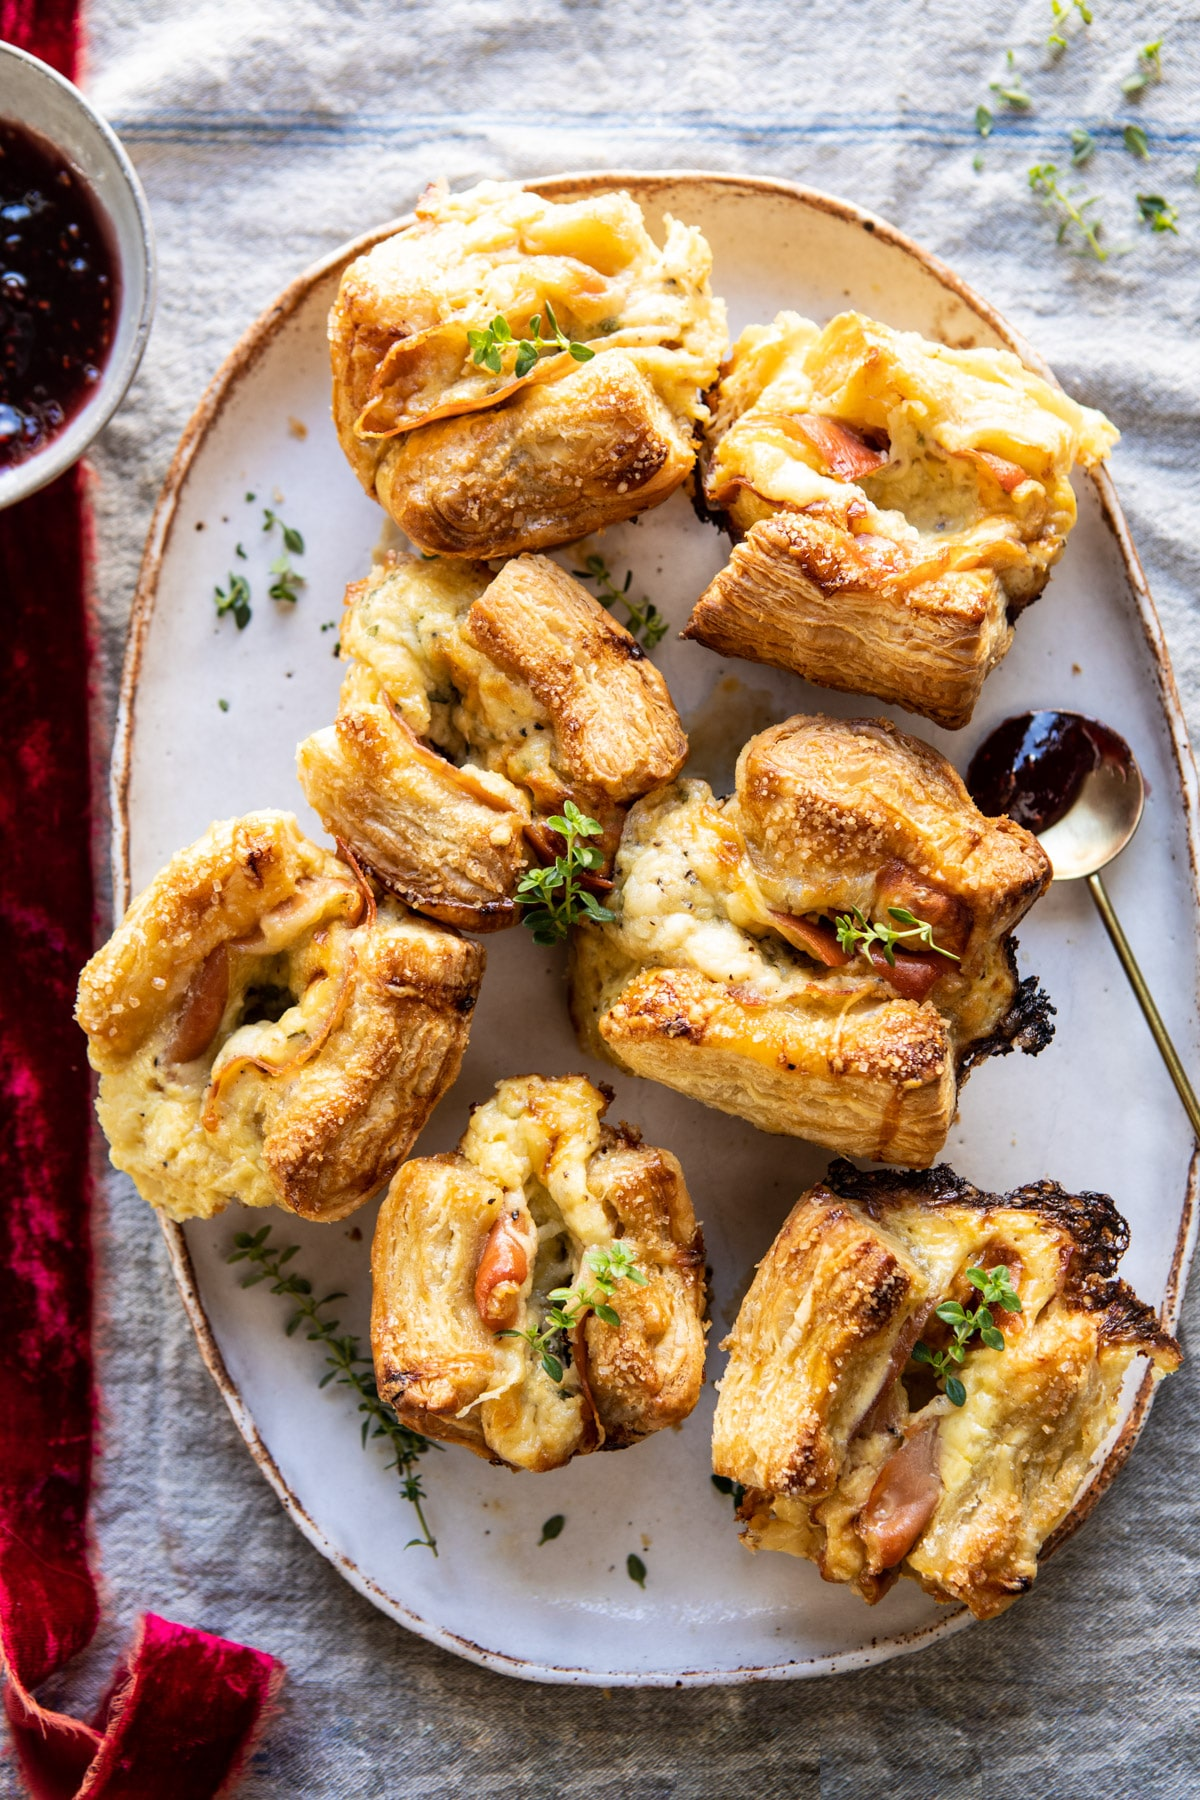 Easy Cheese and Prosciutto Croissants